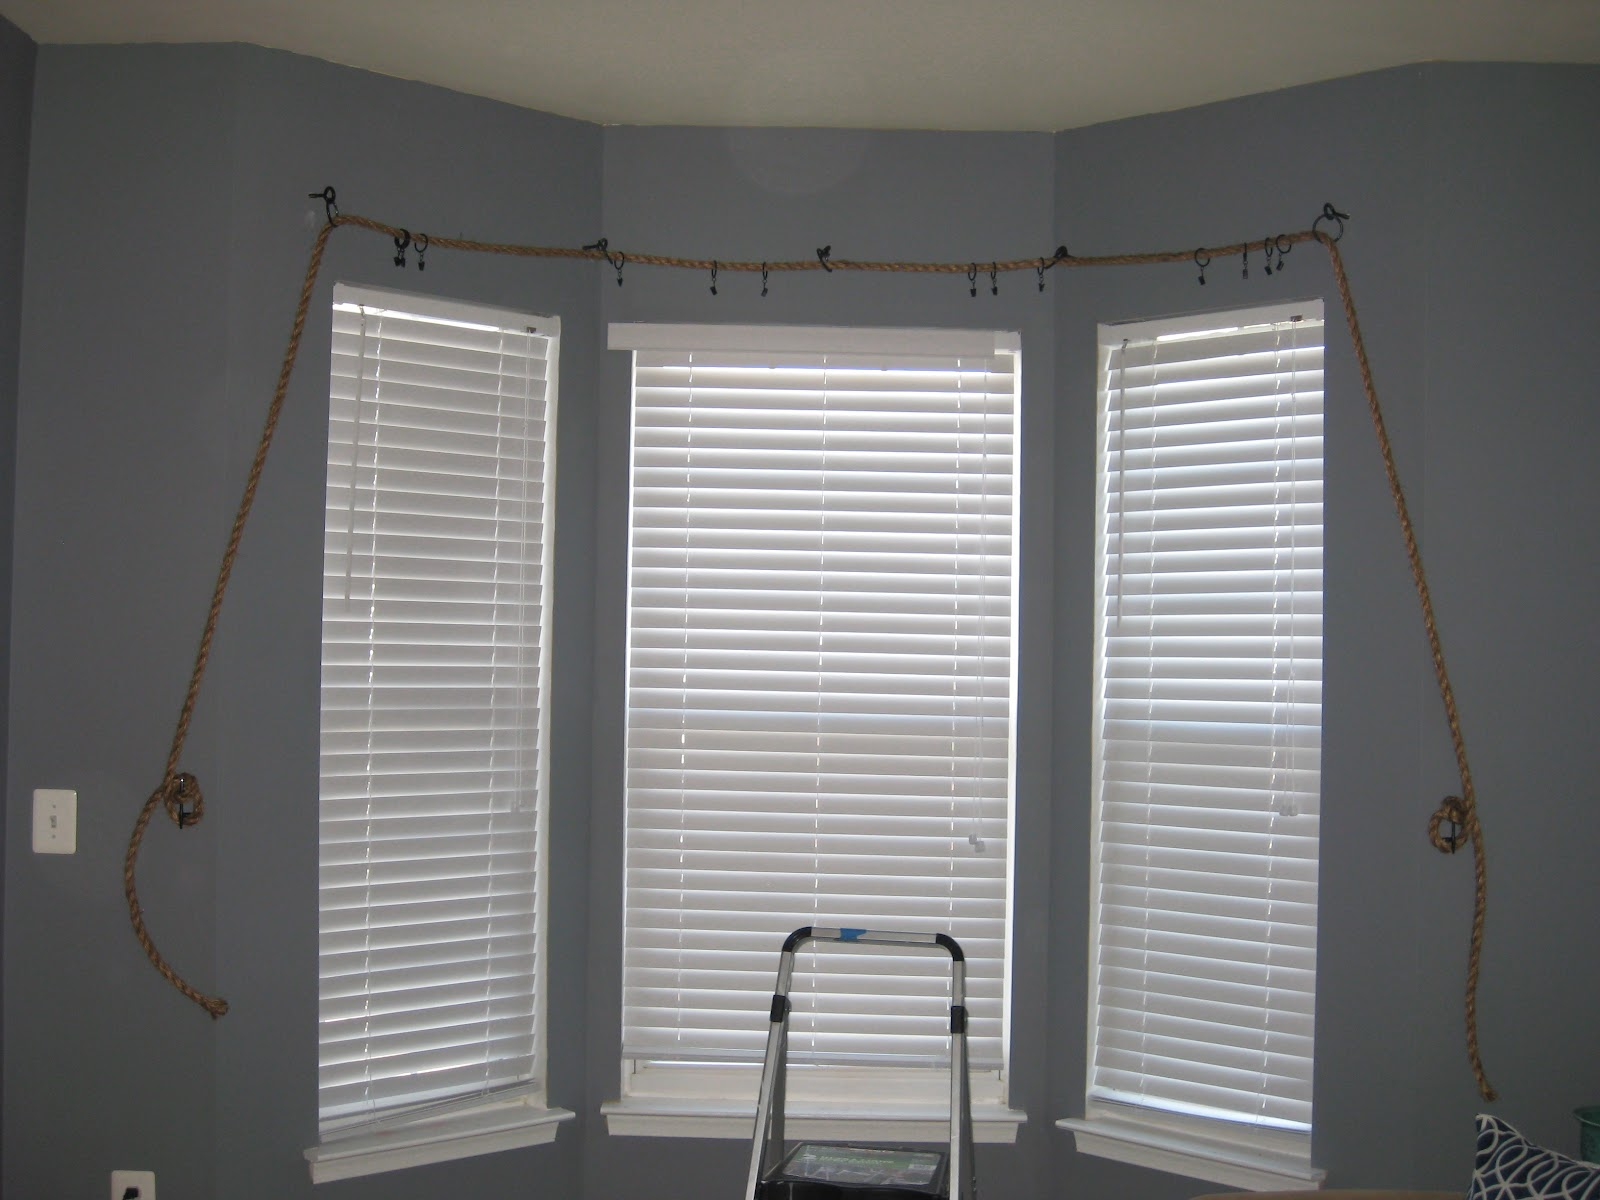 ... Family: Rope Turned Nautical Theme Curtain Rod by Chris & Amy